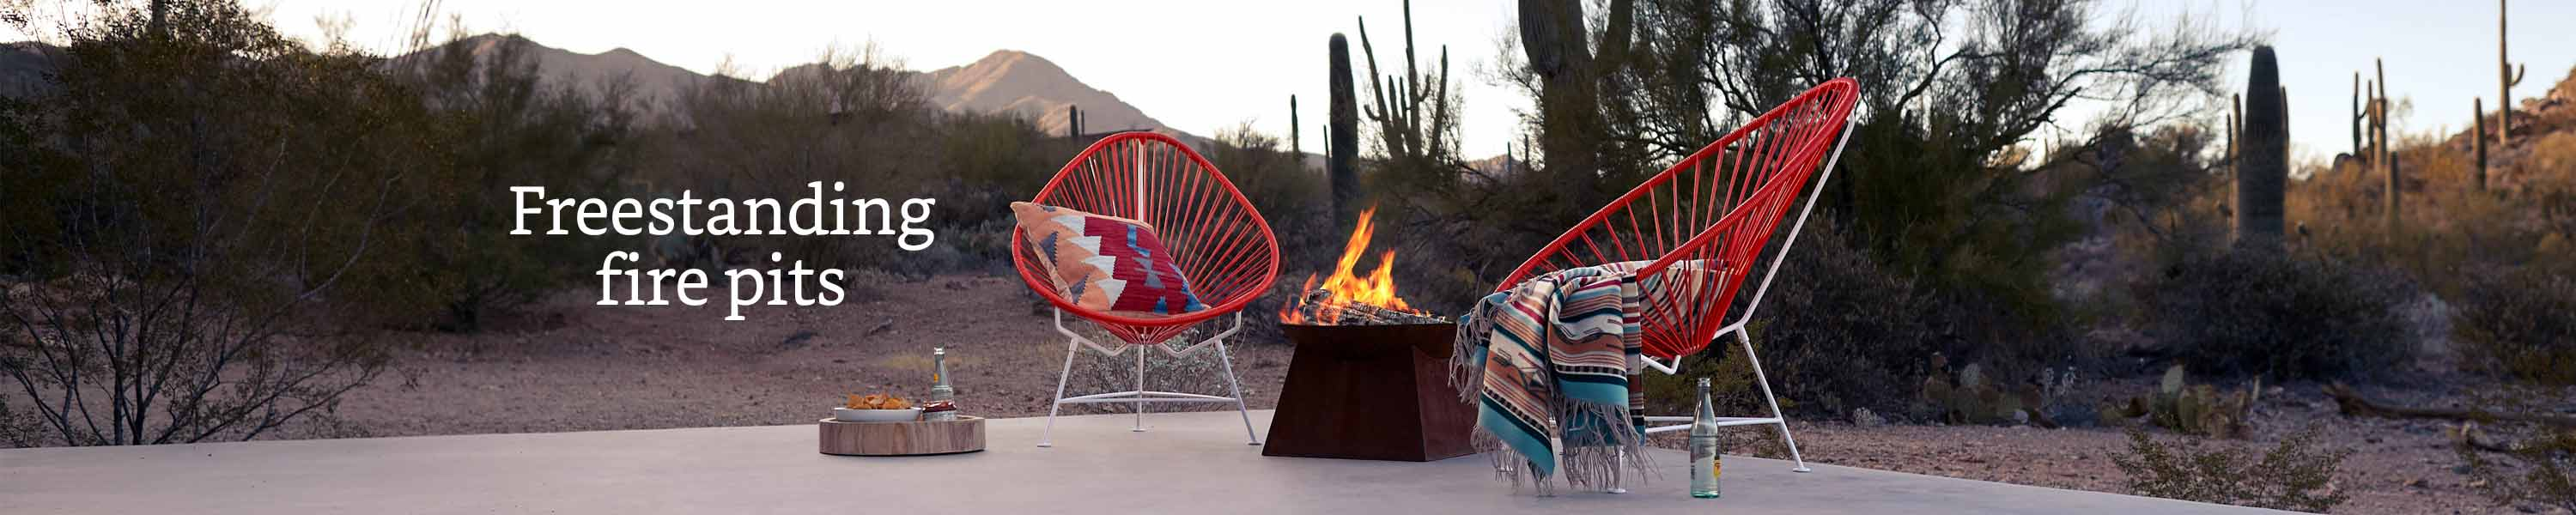 Freestanding fire pits